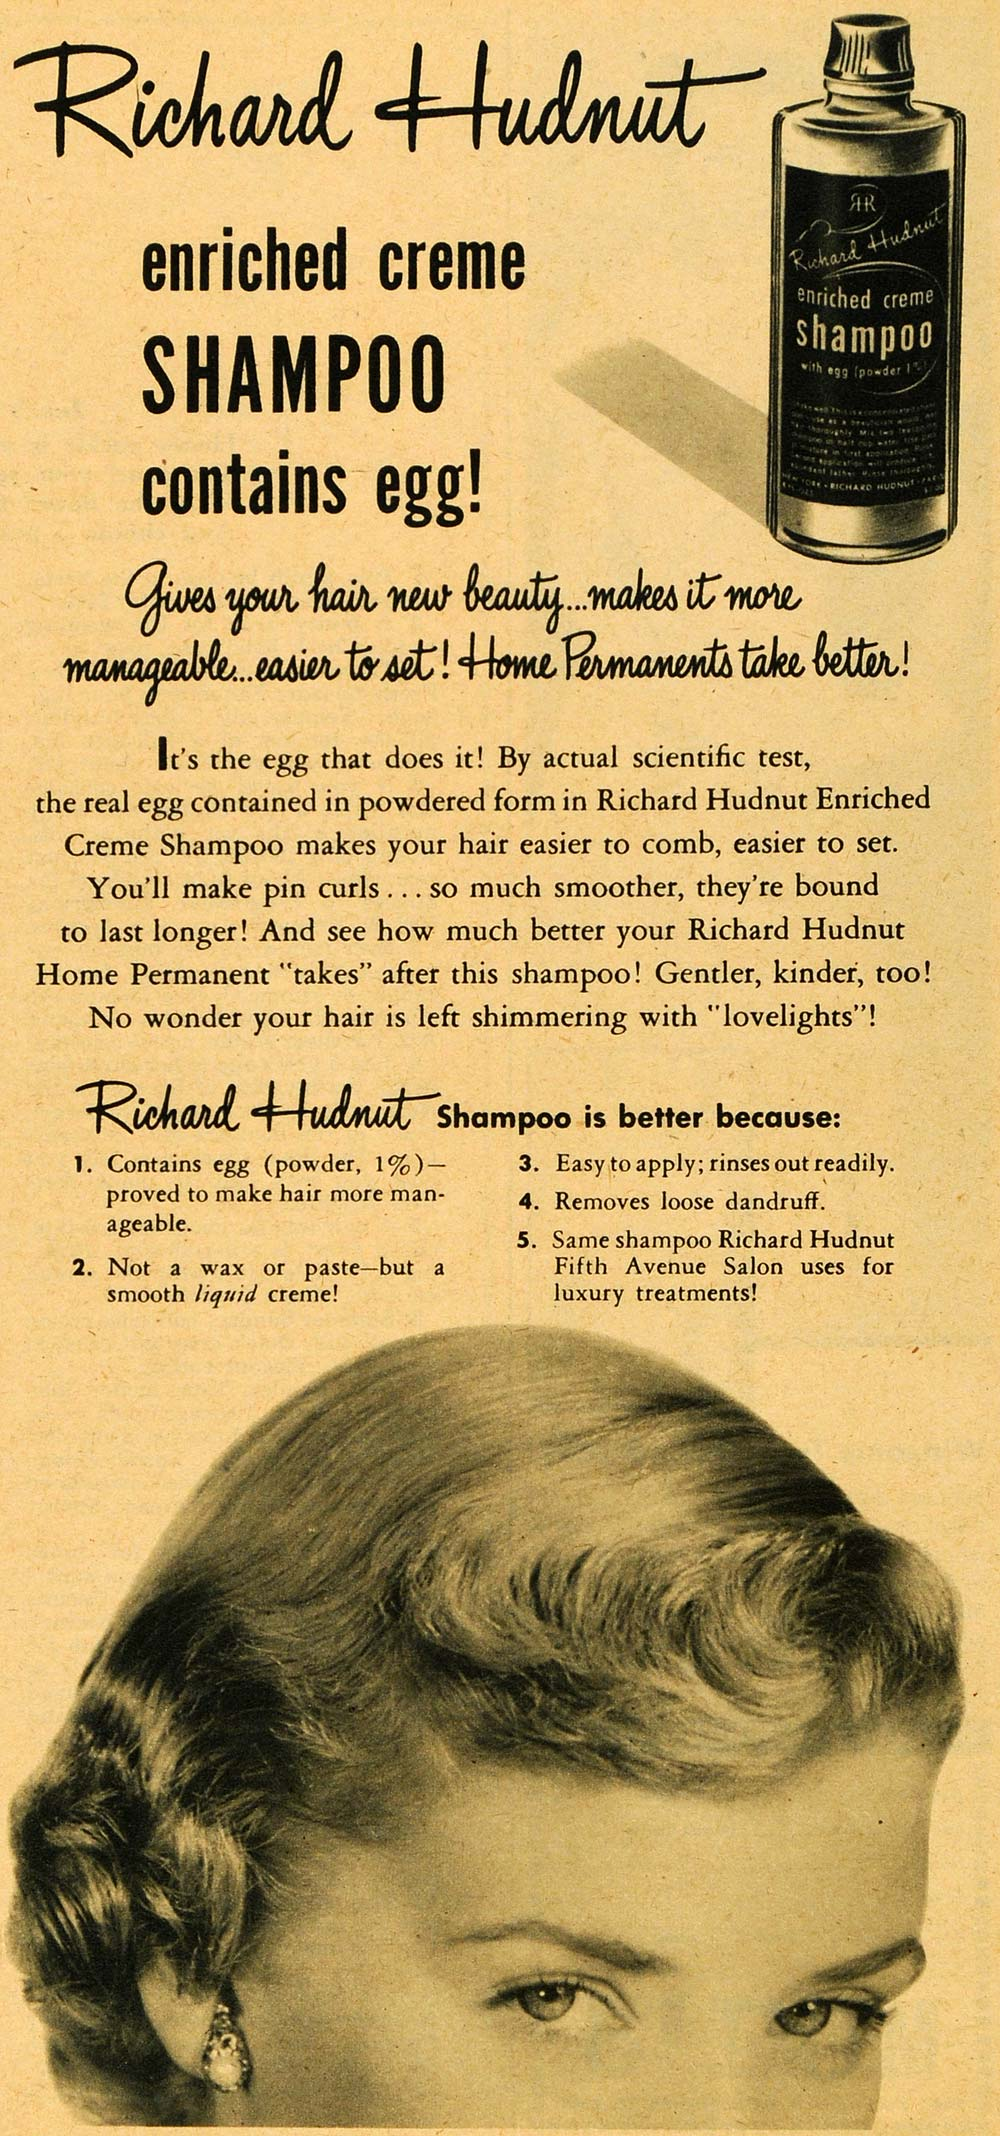 1949 Ad Richard Hudnut Creme Shampoo Powdered Egg Hair Product Salon Liquid RO3